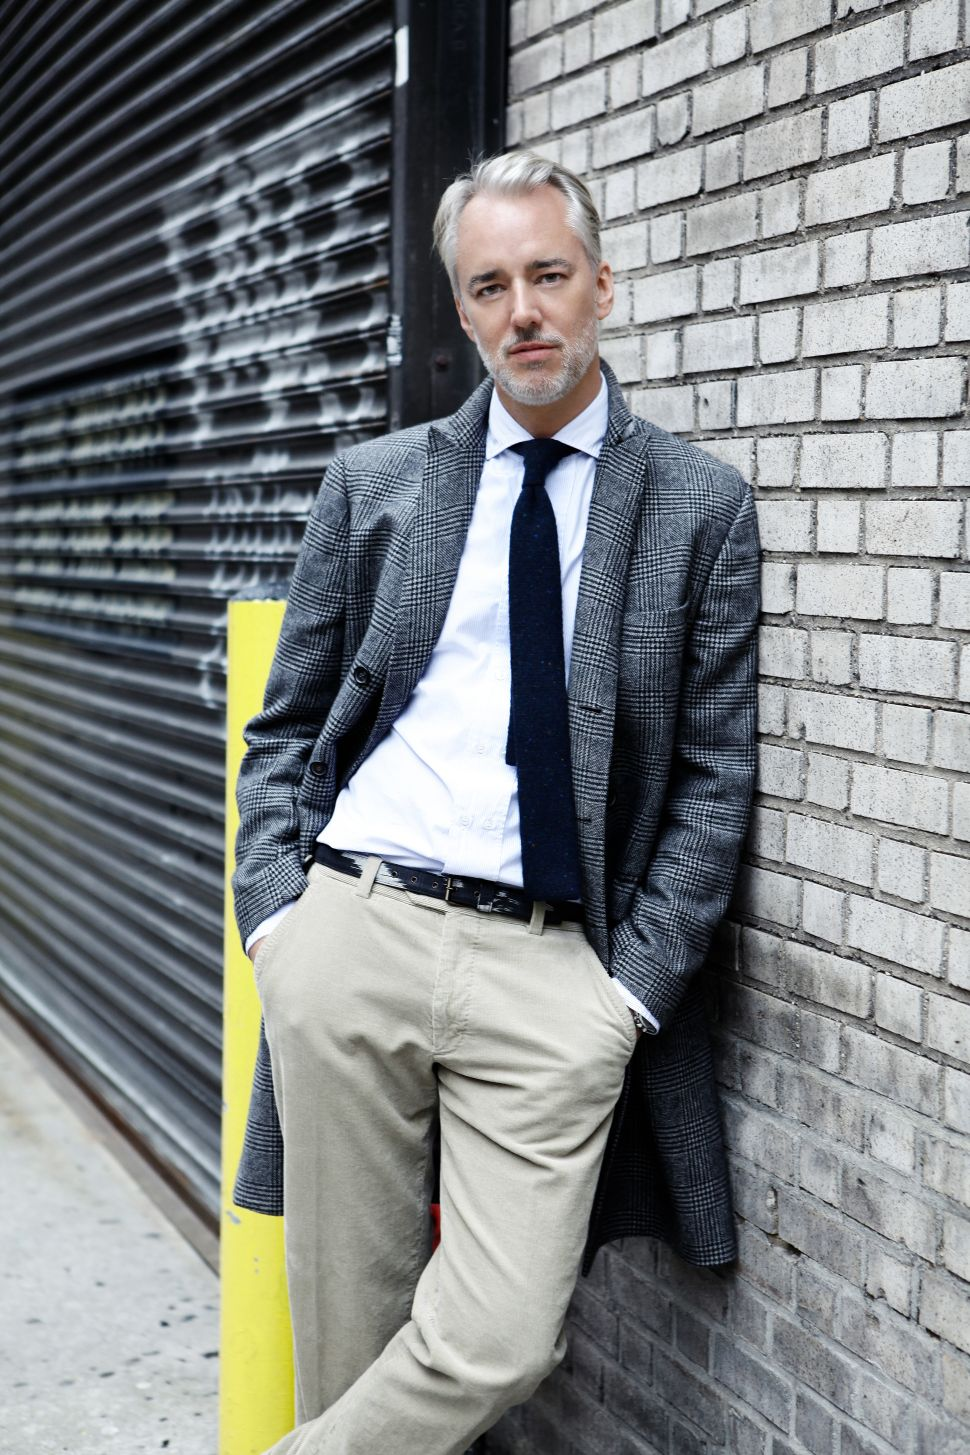 Menswear Designer Michael Bastian Has a New Outlook on His Business